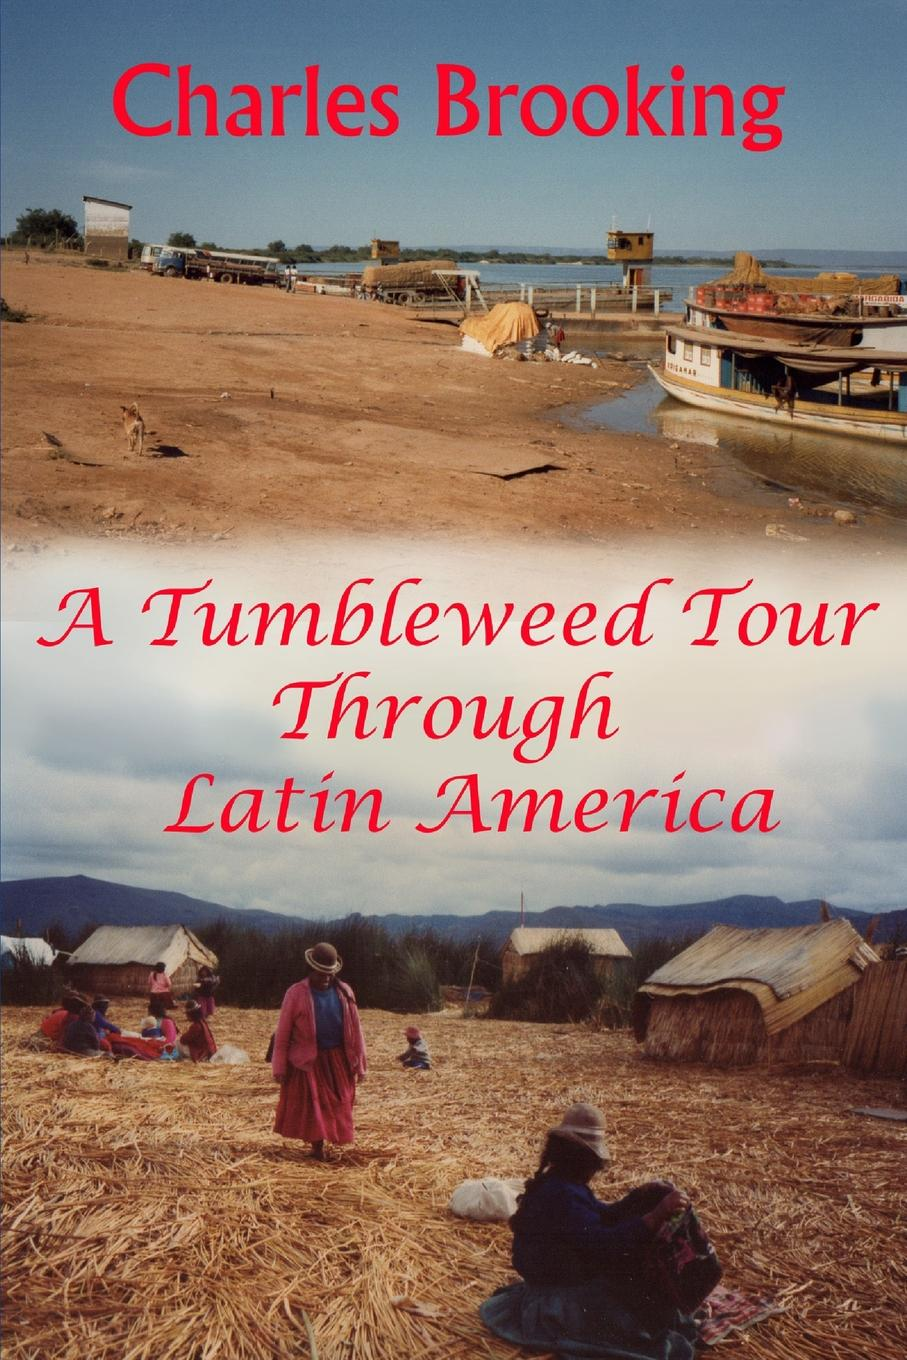 charles brooking A tumbleweed tour through Latin America